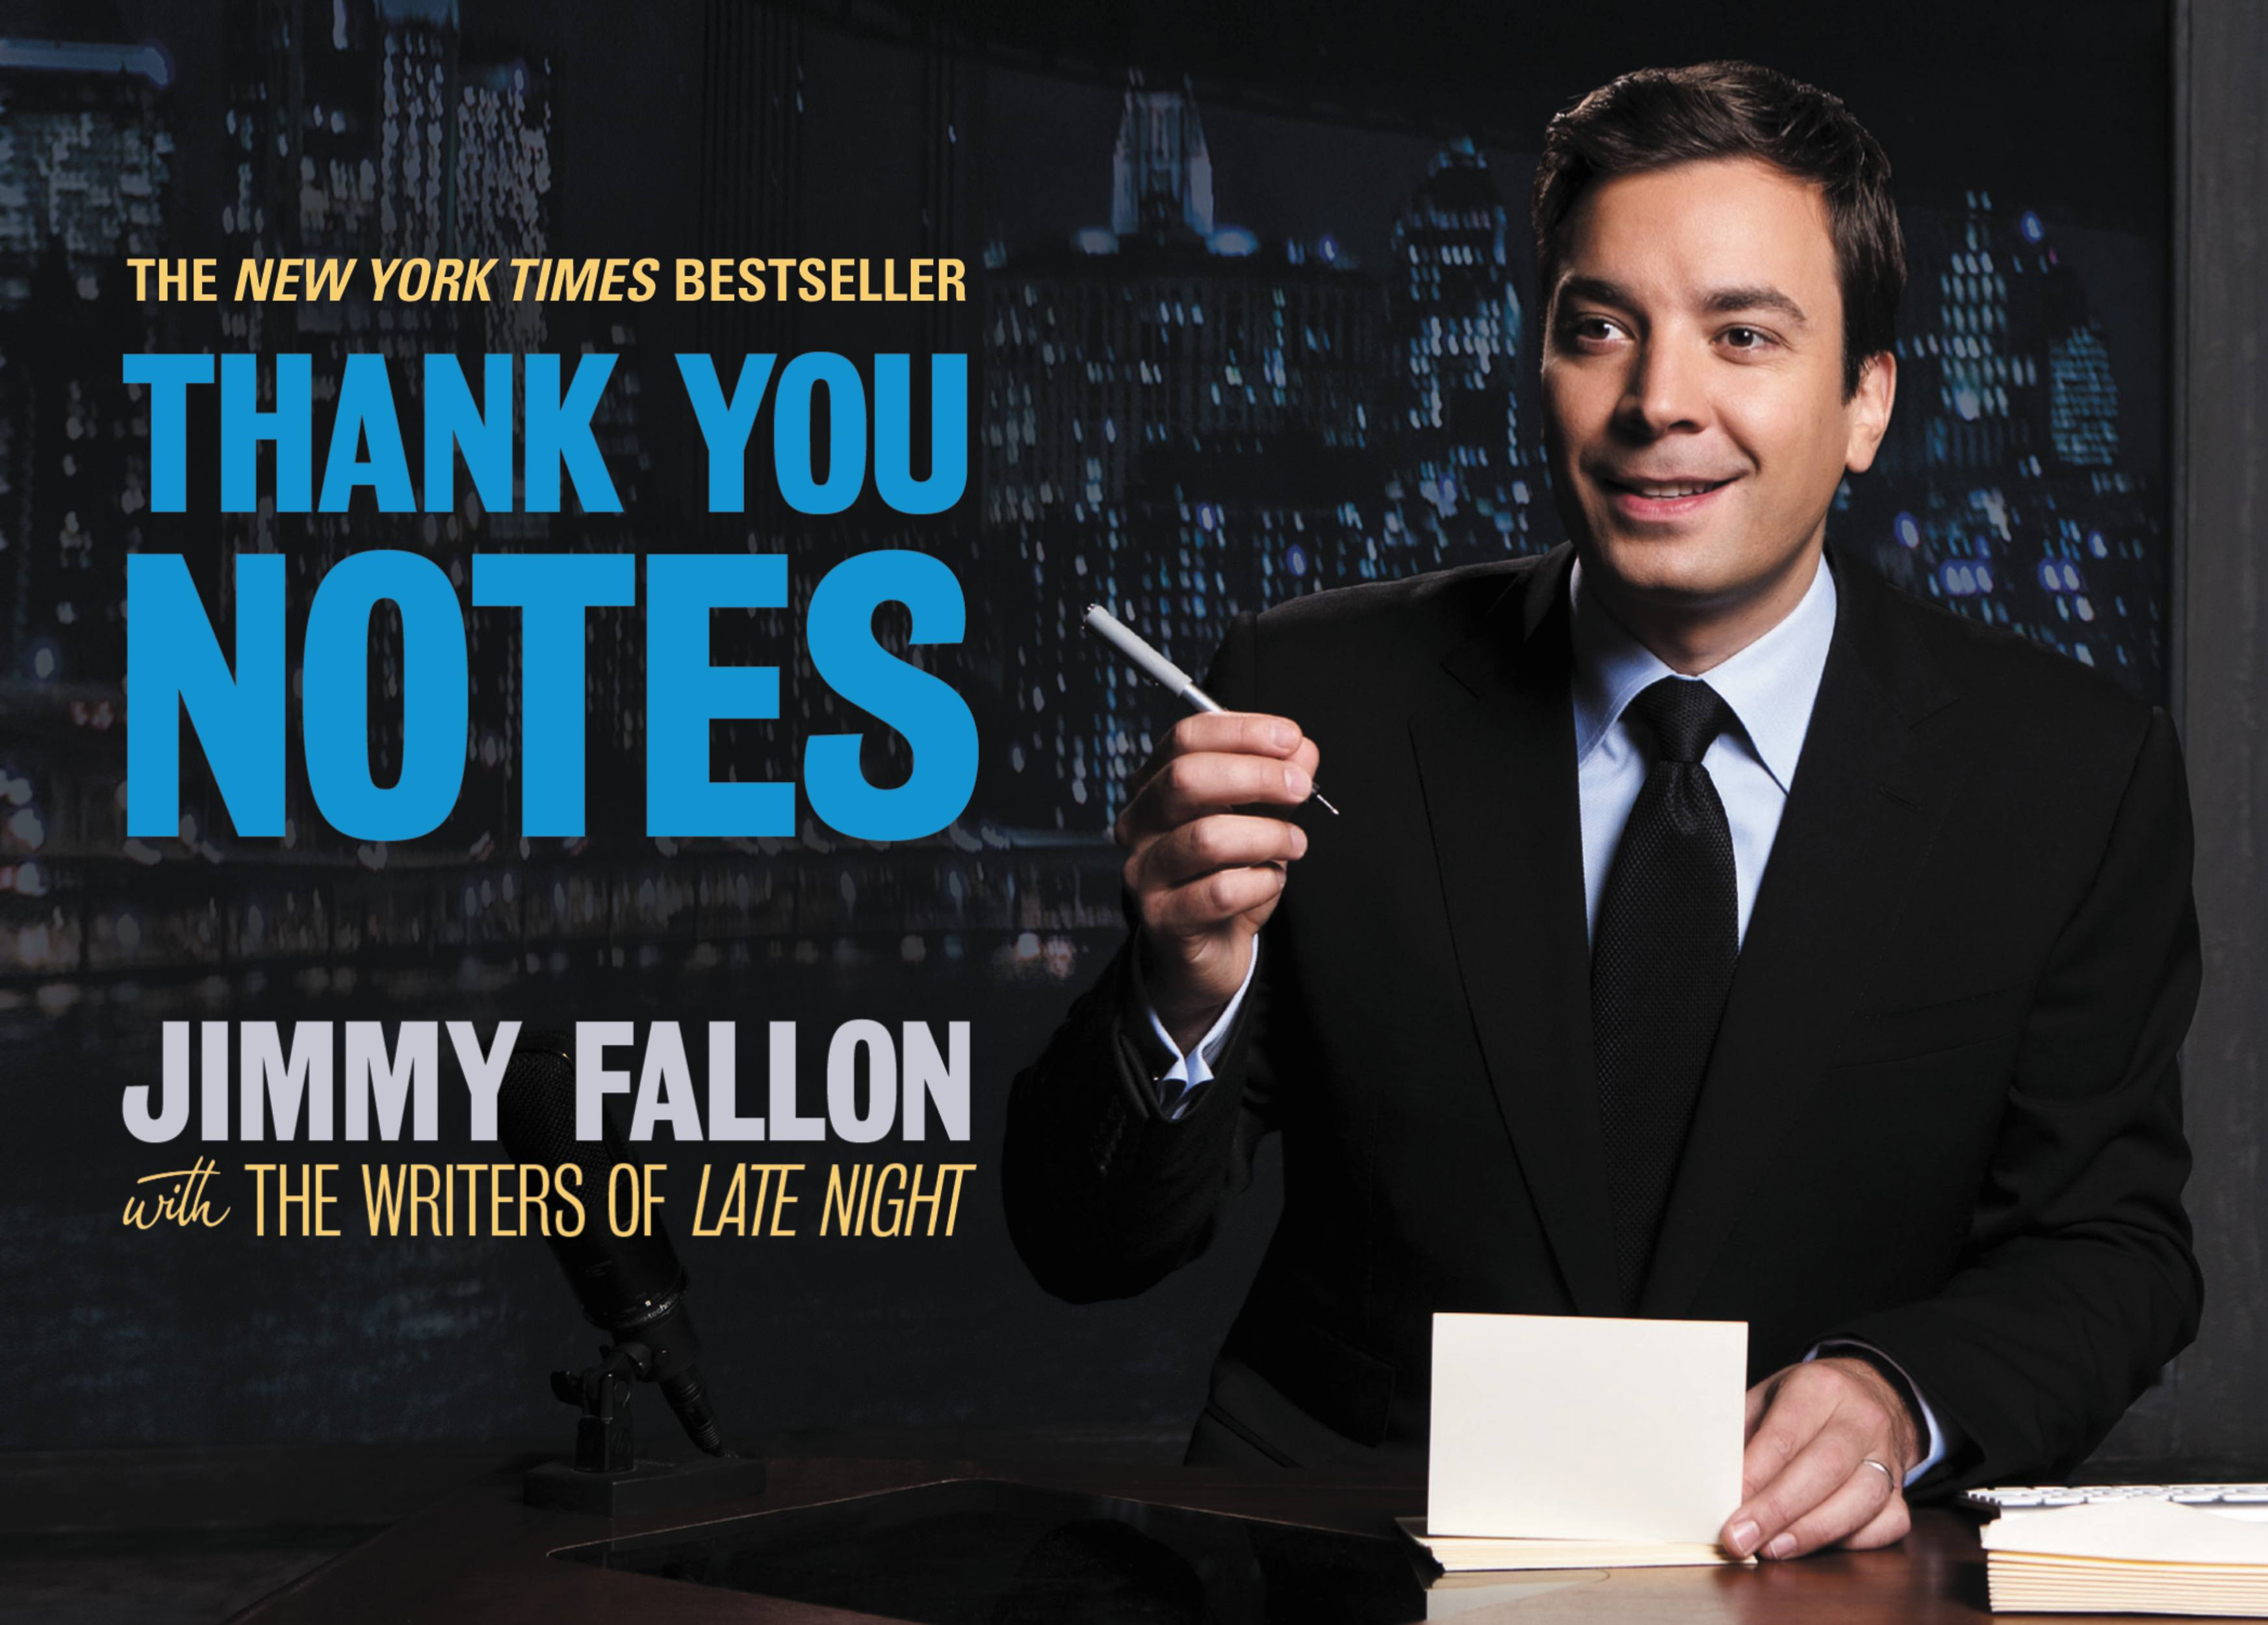 Thank You Notes By: Jimmy Fallon,the Writers of Late Night